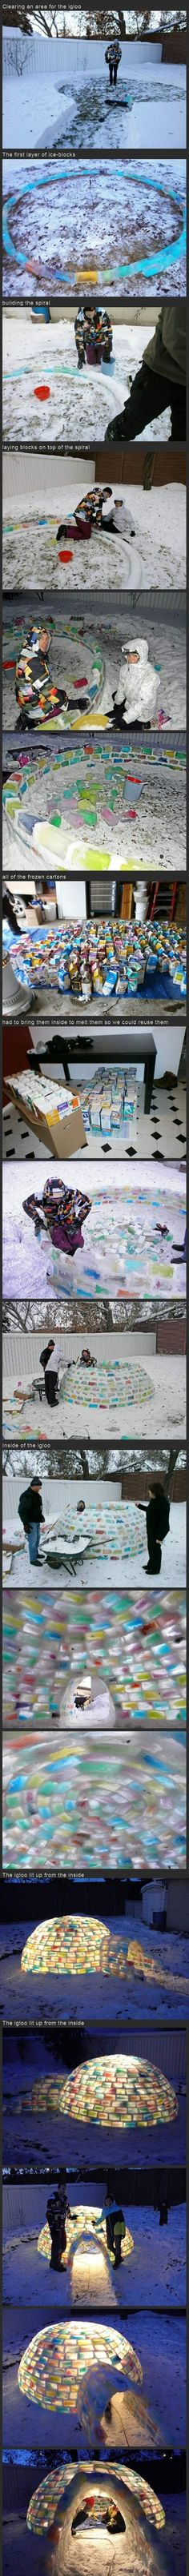 The World's Most Awesome Igloo    - even i  - winter hater -  would like to do it with somebody;)